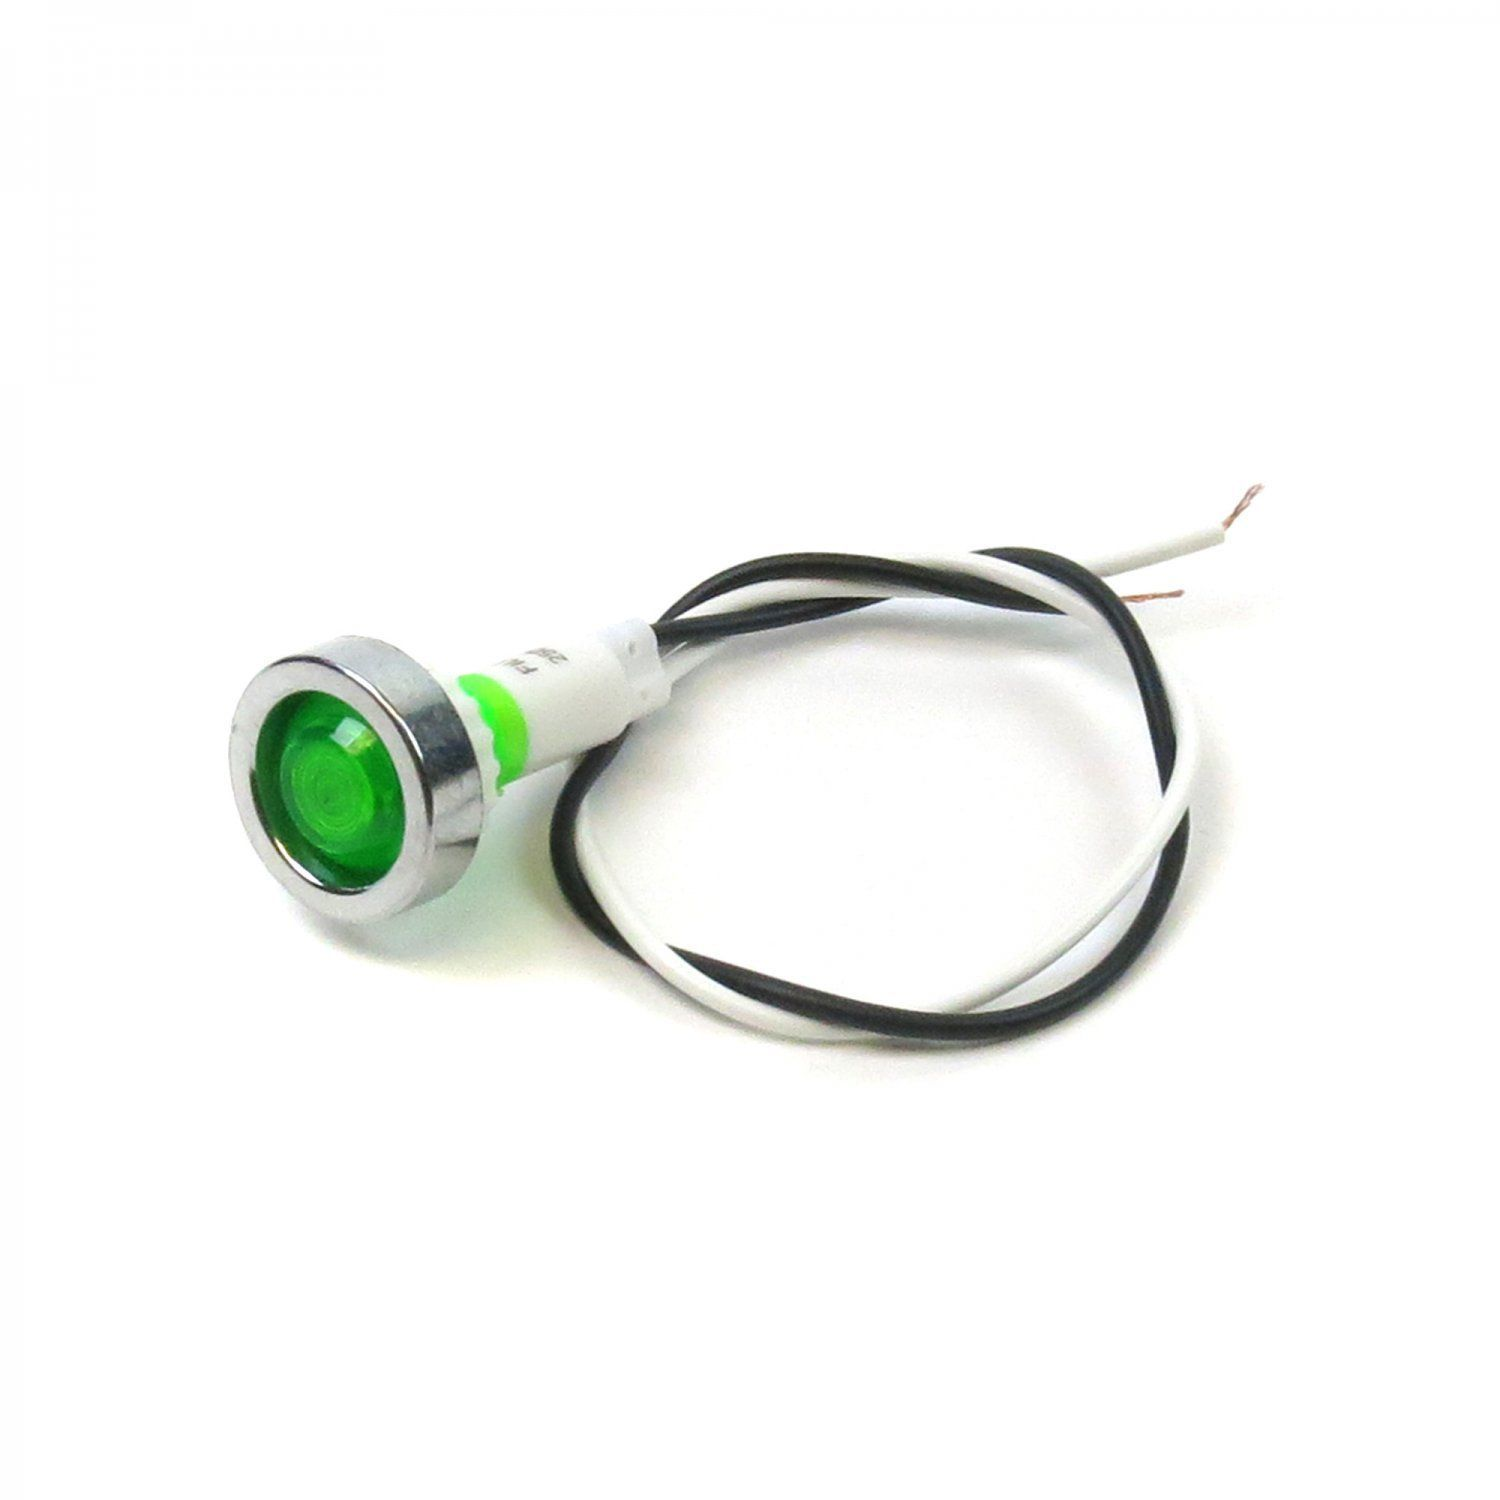 Green Led Indicator Light 12v Vintage Dash Part Accessory Lamp Pilot Pre Wired Ebay Indicator Lights Green Led Led Indicator